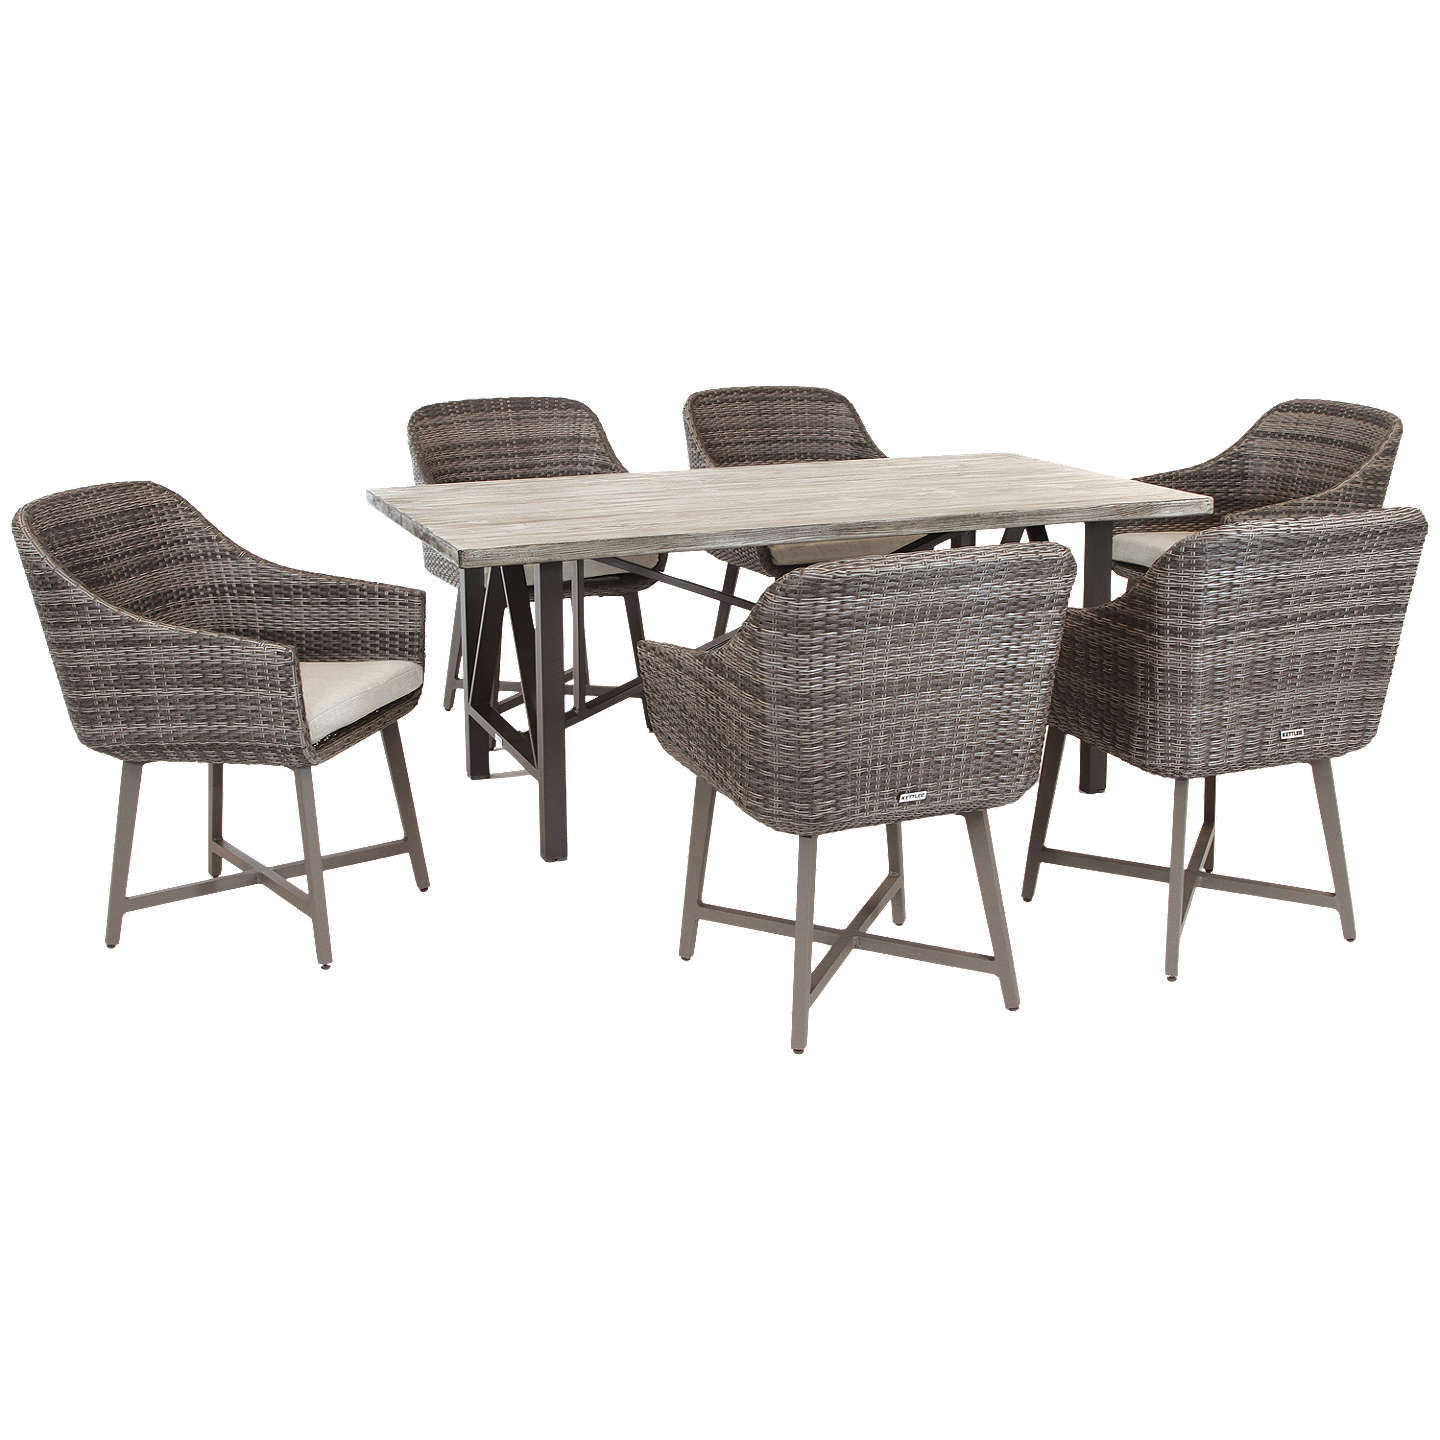 6 Seater Garden Furniture Kettler lamode 6 seater garden dining table and chairs set rattan buykettler lamode 6 seater garden dining table and chairs set rattan online at johnlewis workwithnaturefo